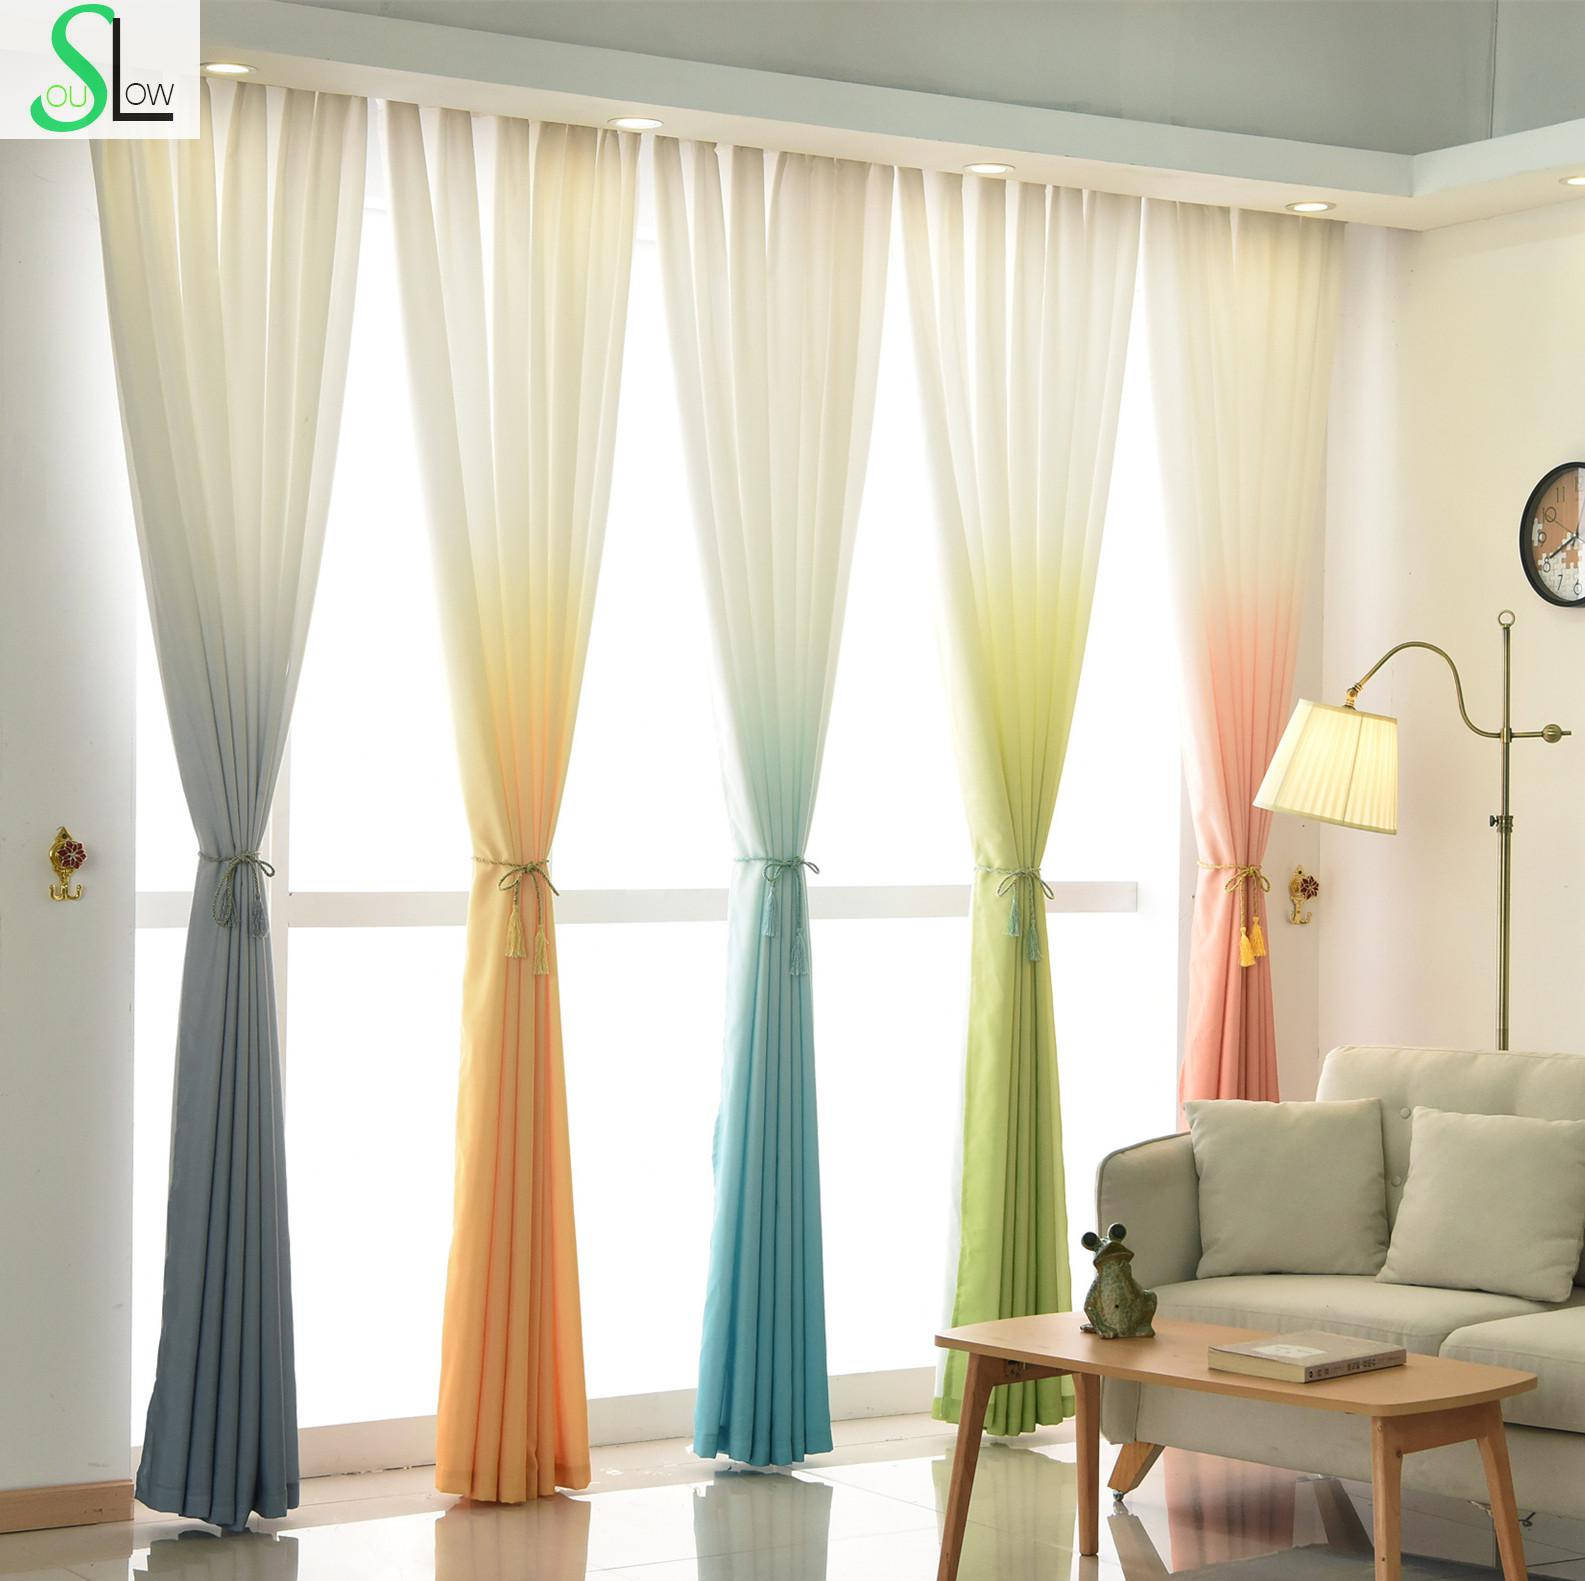 US $7.86 35% OFF|High Grade 5 Gradient Color yellow Blue gray pink green  Curtain Modern Tulle Curtains For Living Room And Fabrics Beautiful-in ...